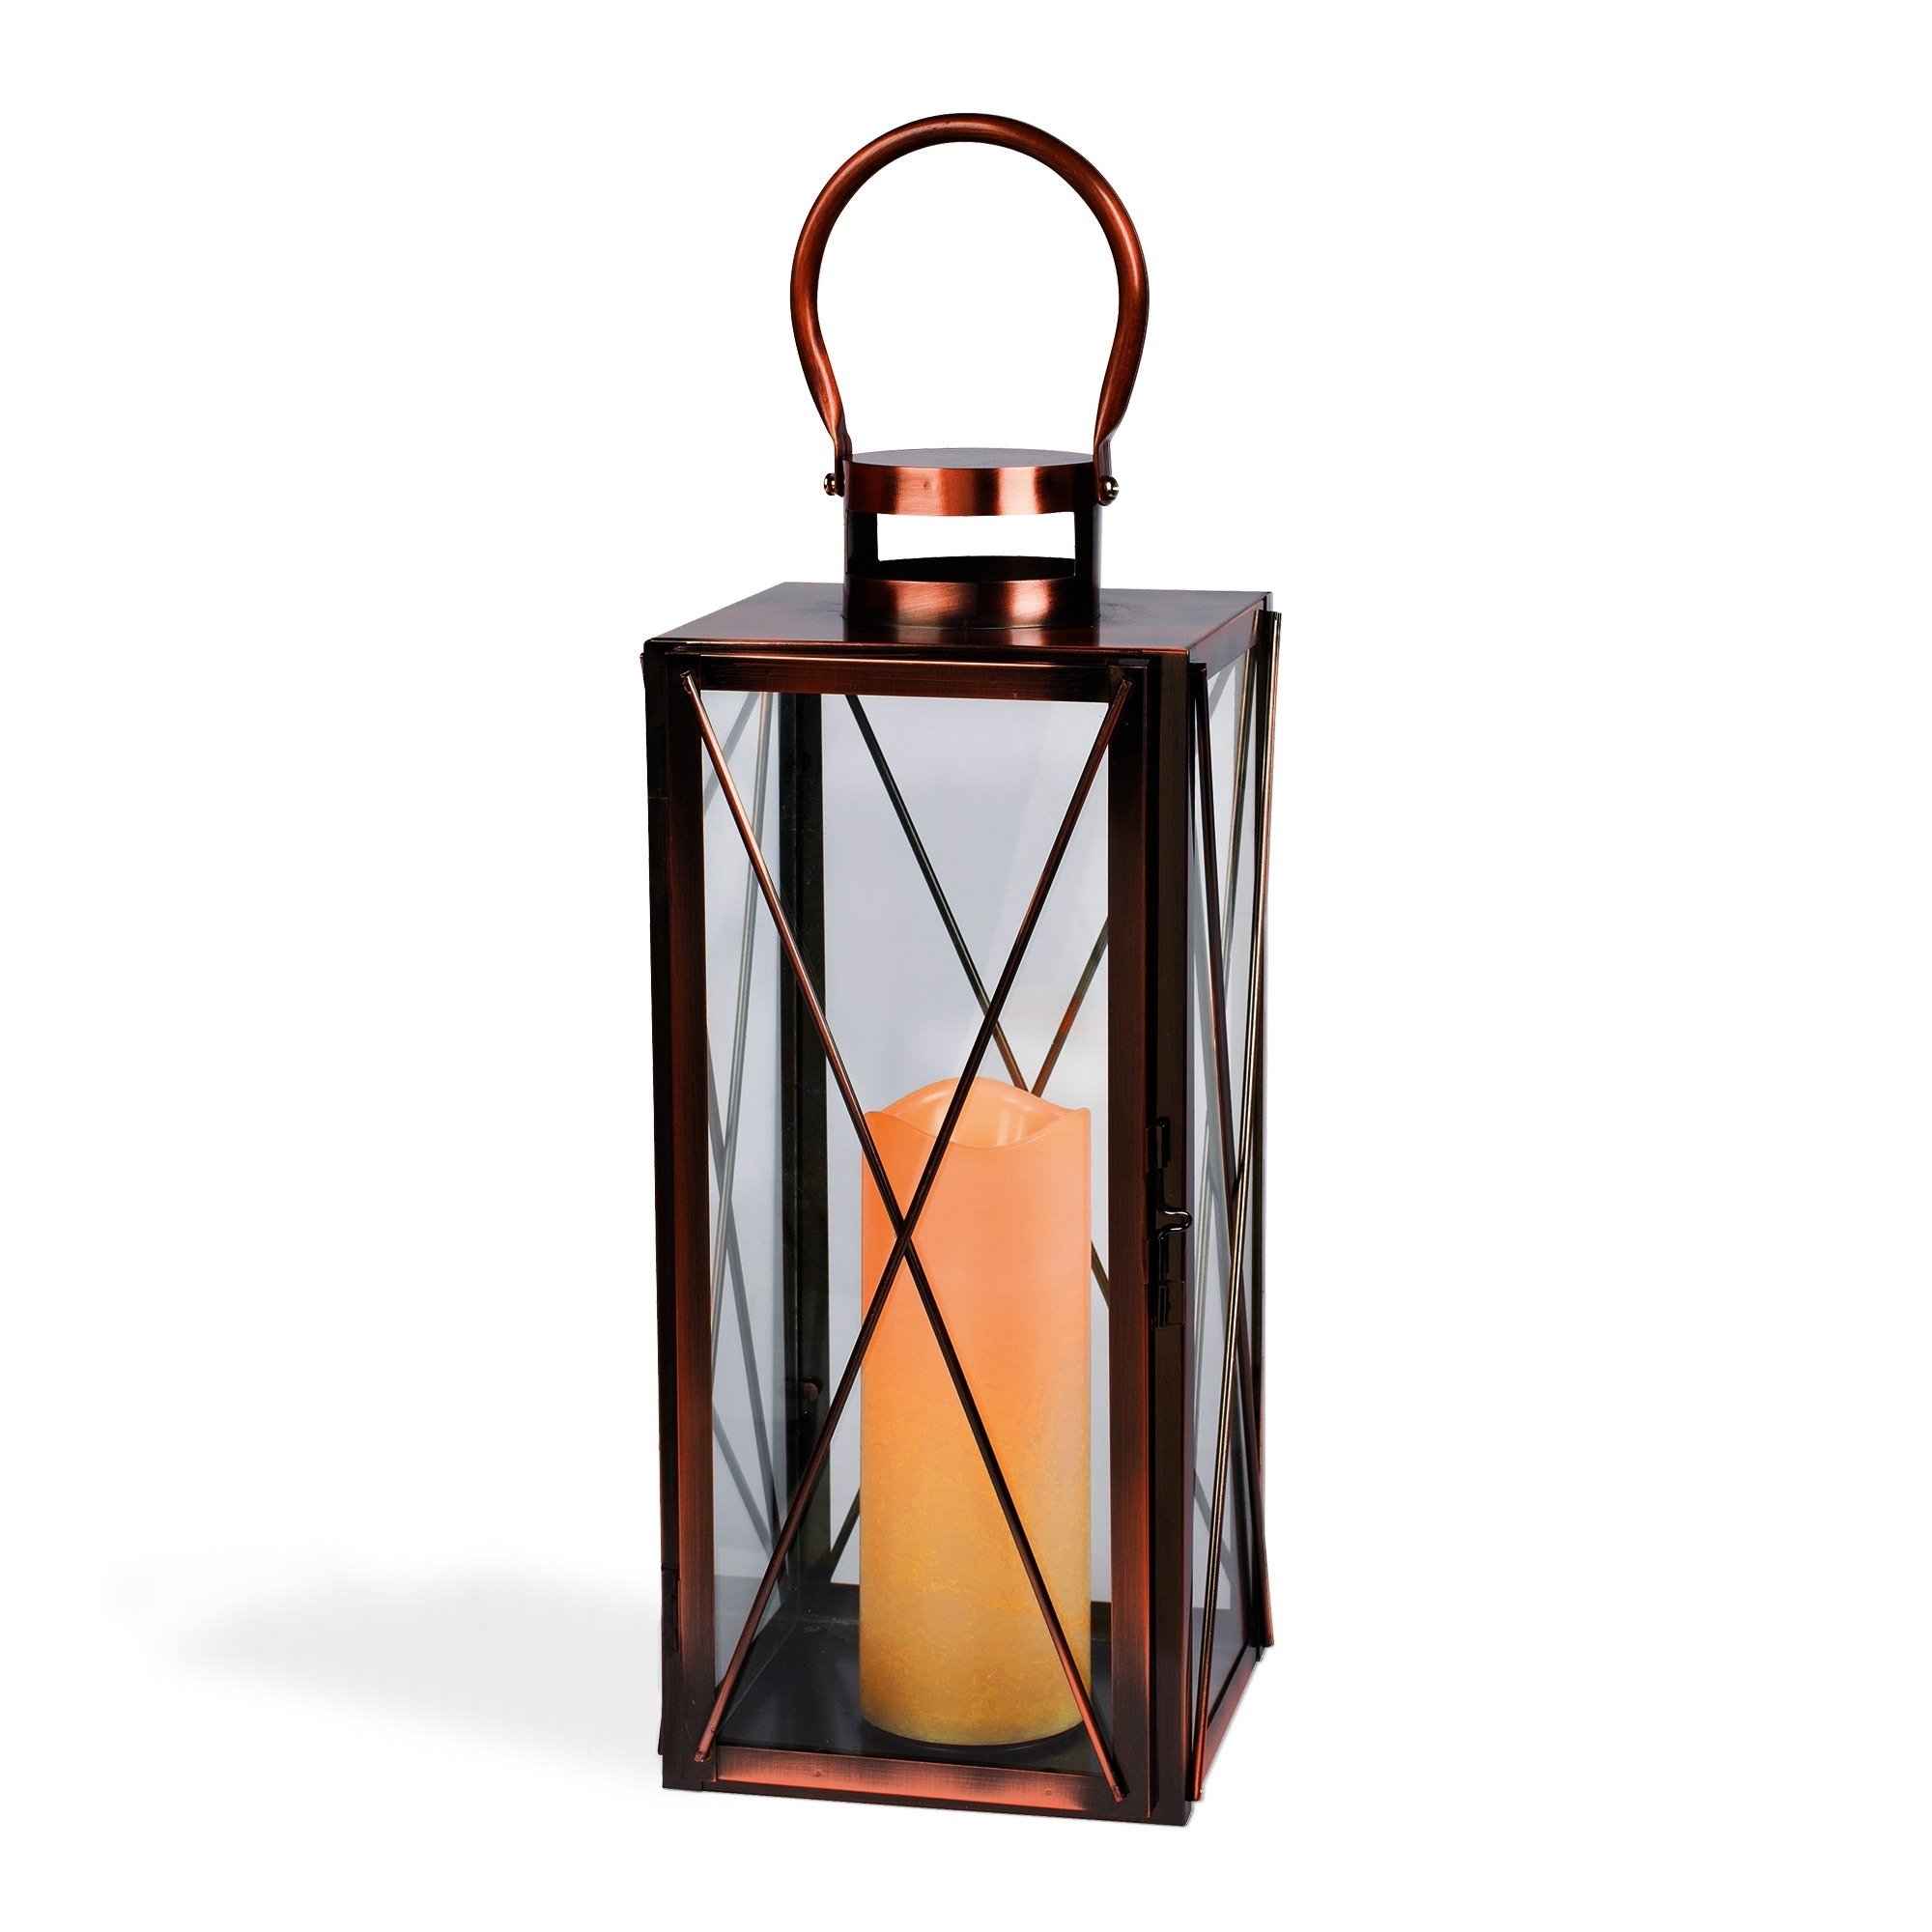 Inspiration about Interior : Hanging Candle 16Inch Copper Lantern Australia Outdoor Intended For Outdoor Hanging Candle Lanterns At Wholesale (#12 of 15)